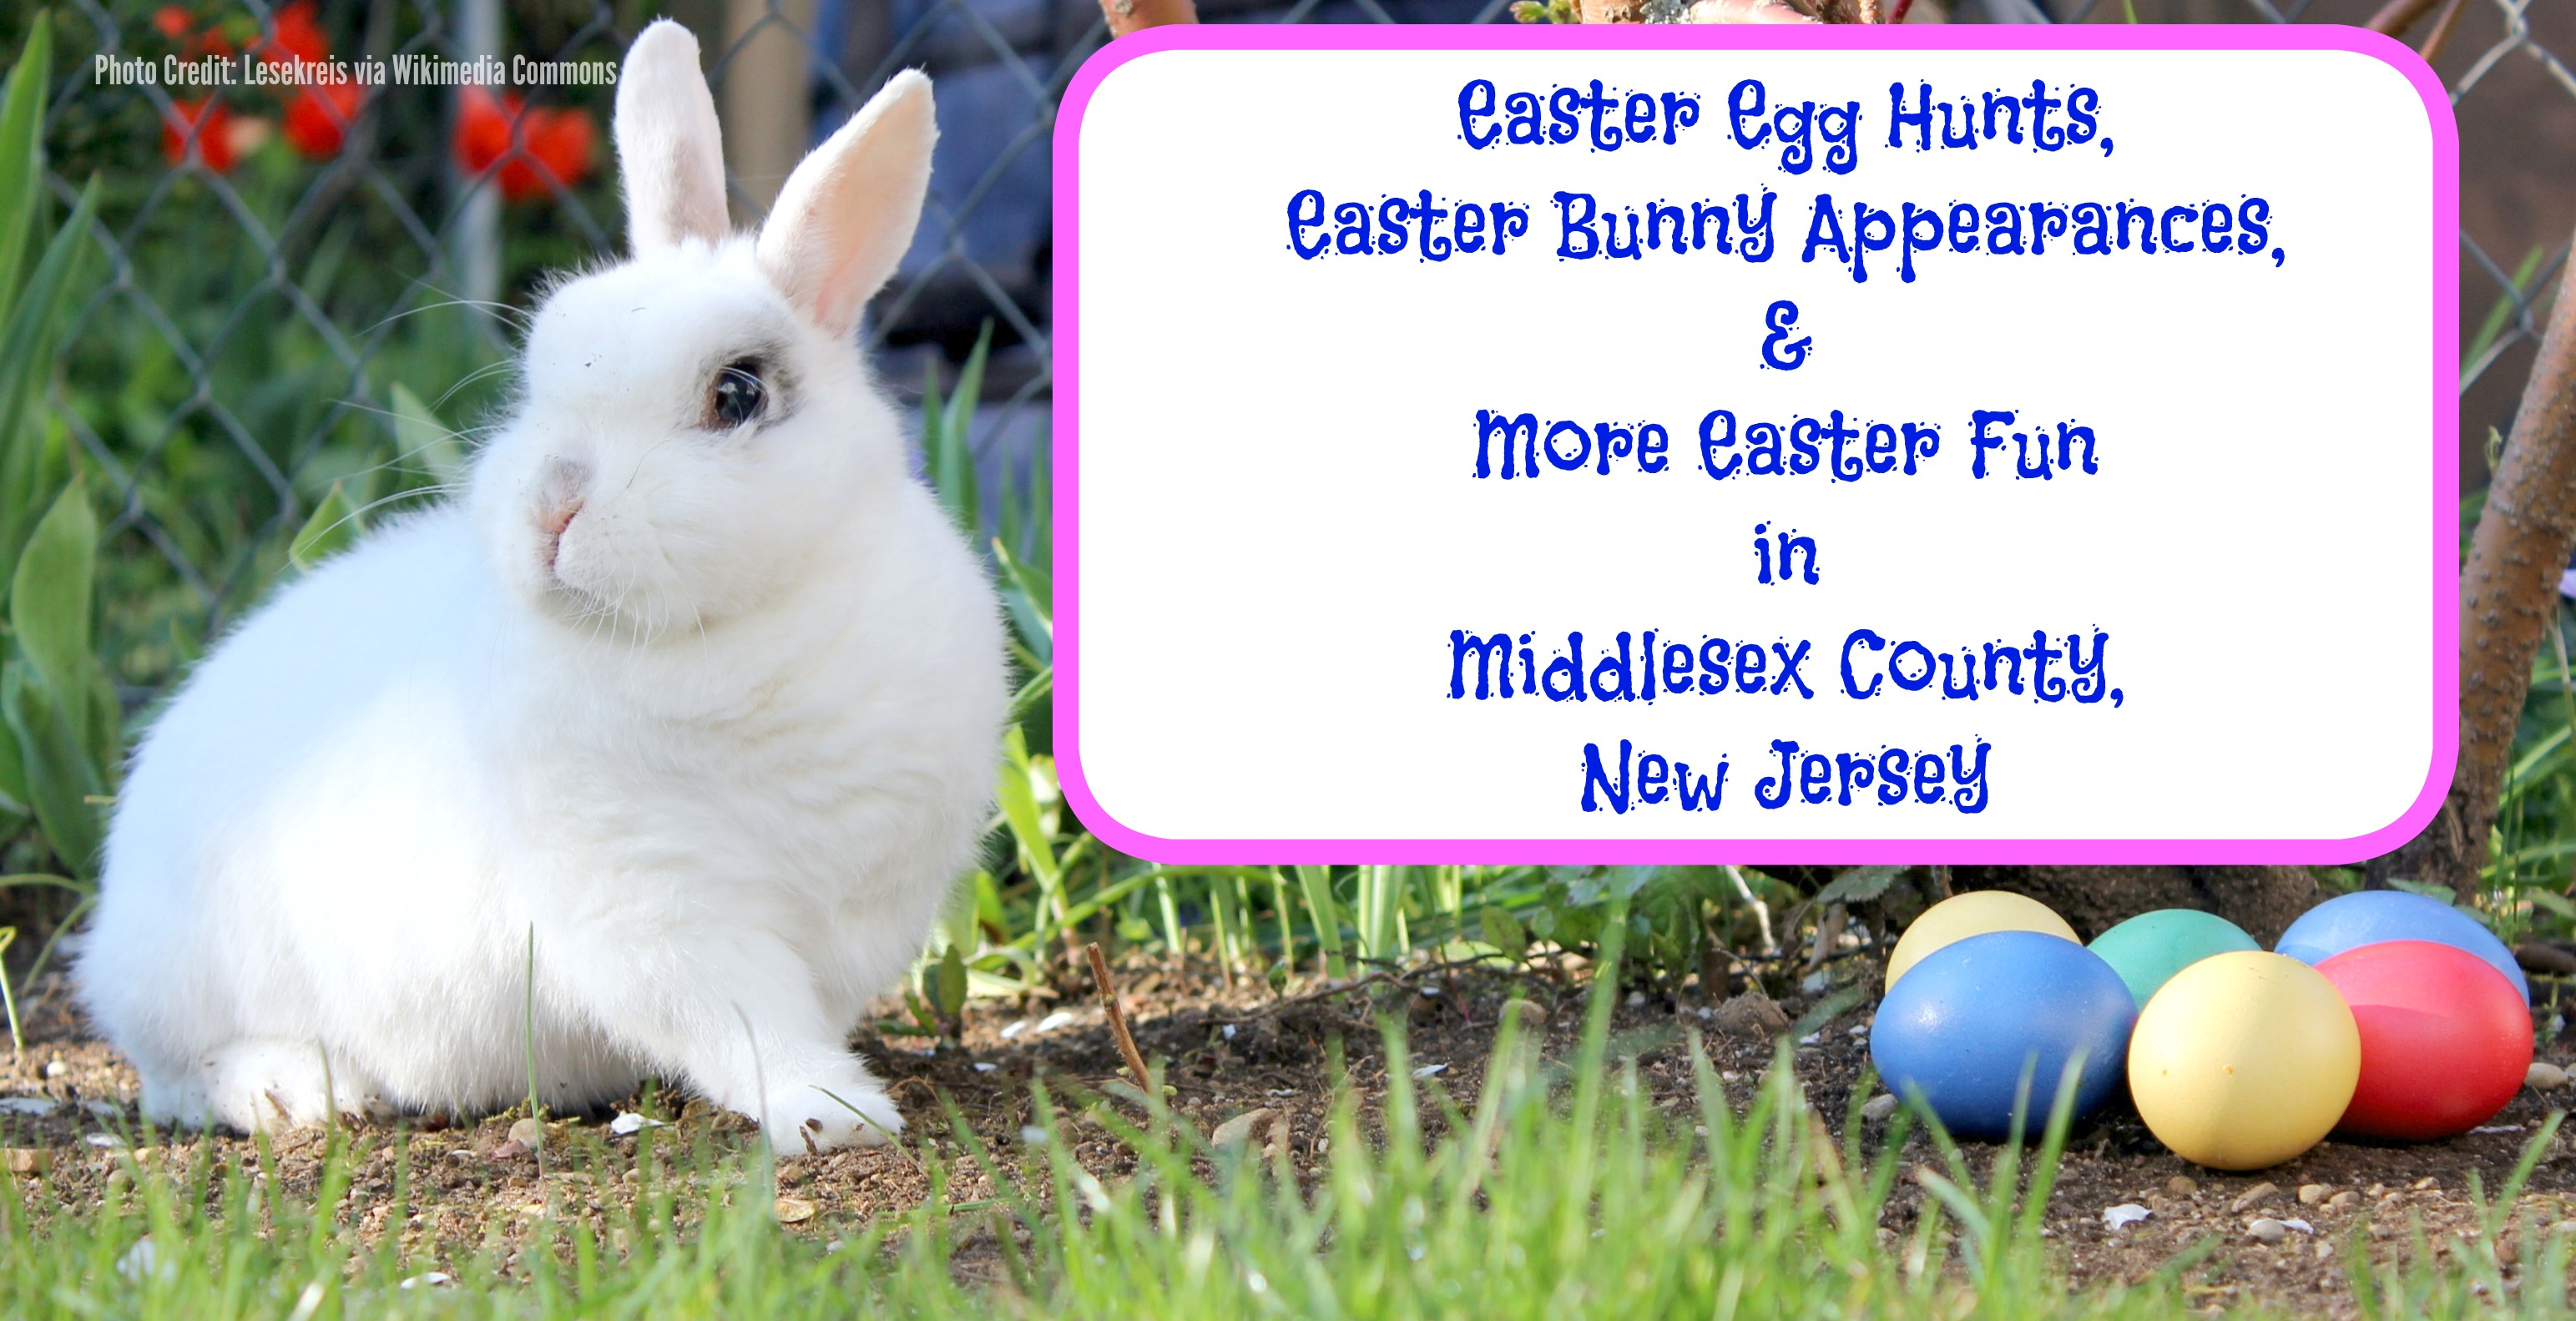 Easter Egg Hunts Bunny Appearances More Fun In Middlesex County Events New Jersey